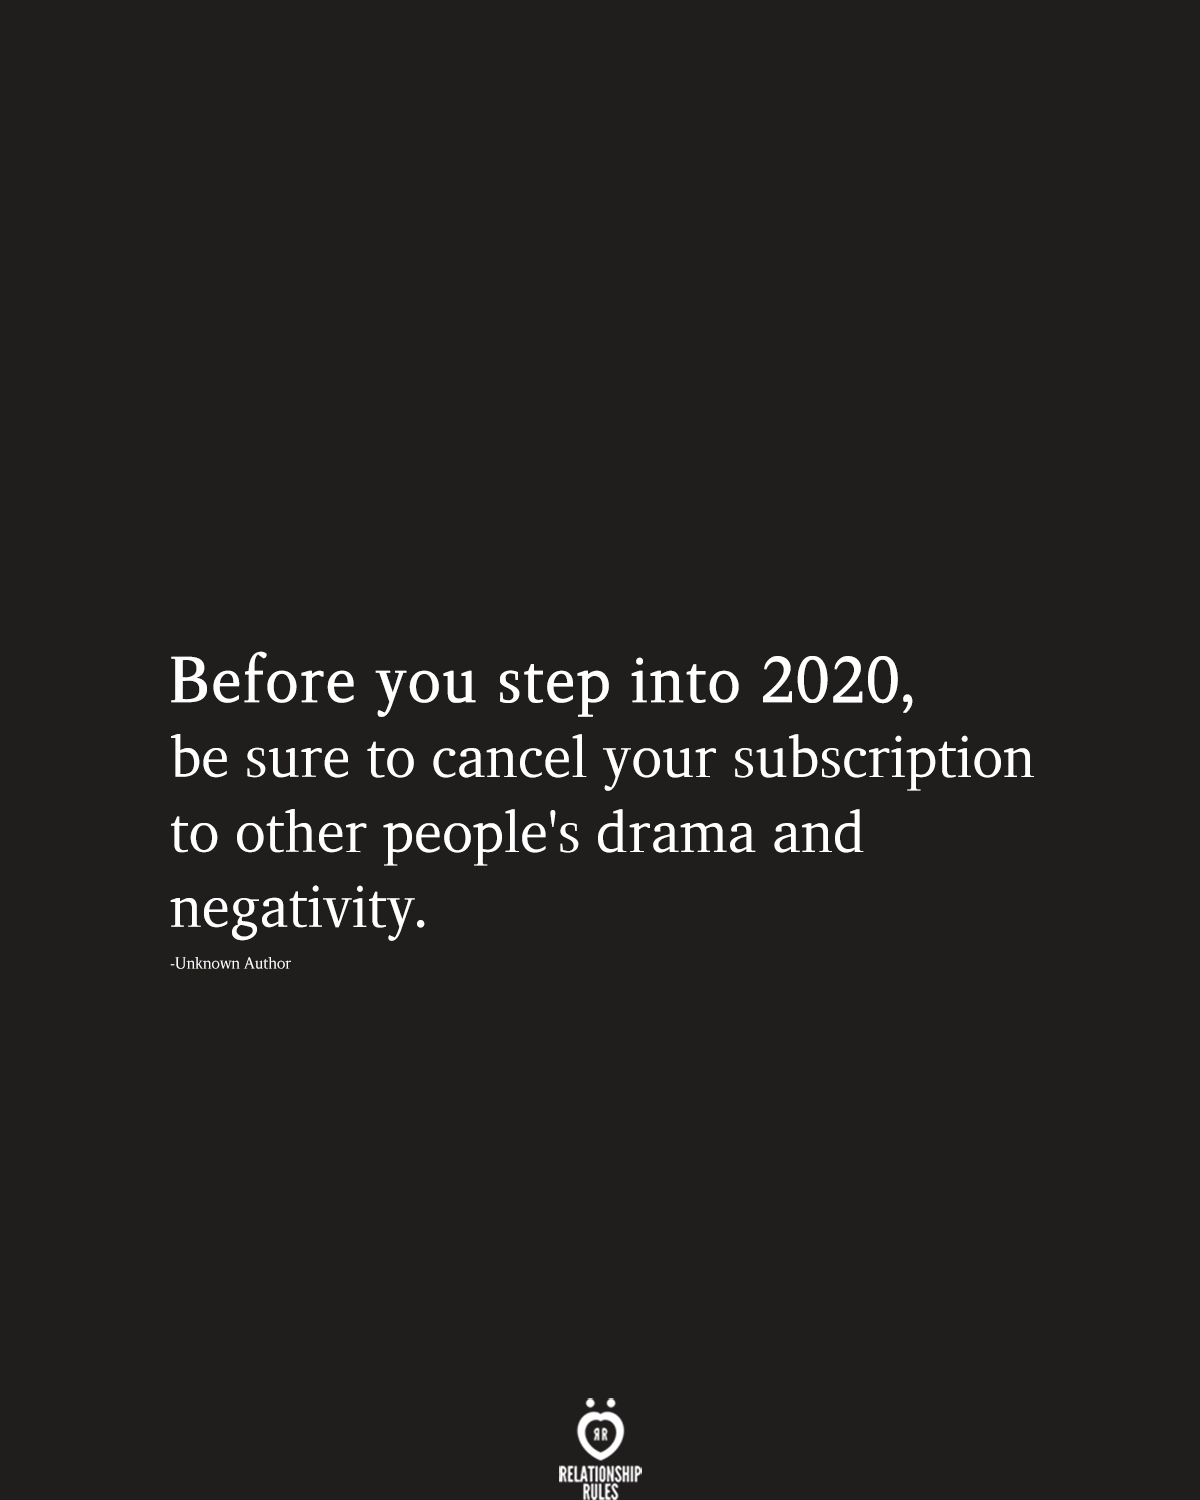 Before You Step Into 2020, Be Sure To Cancel Your Subscription To Other People's Drama  #2020quotes